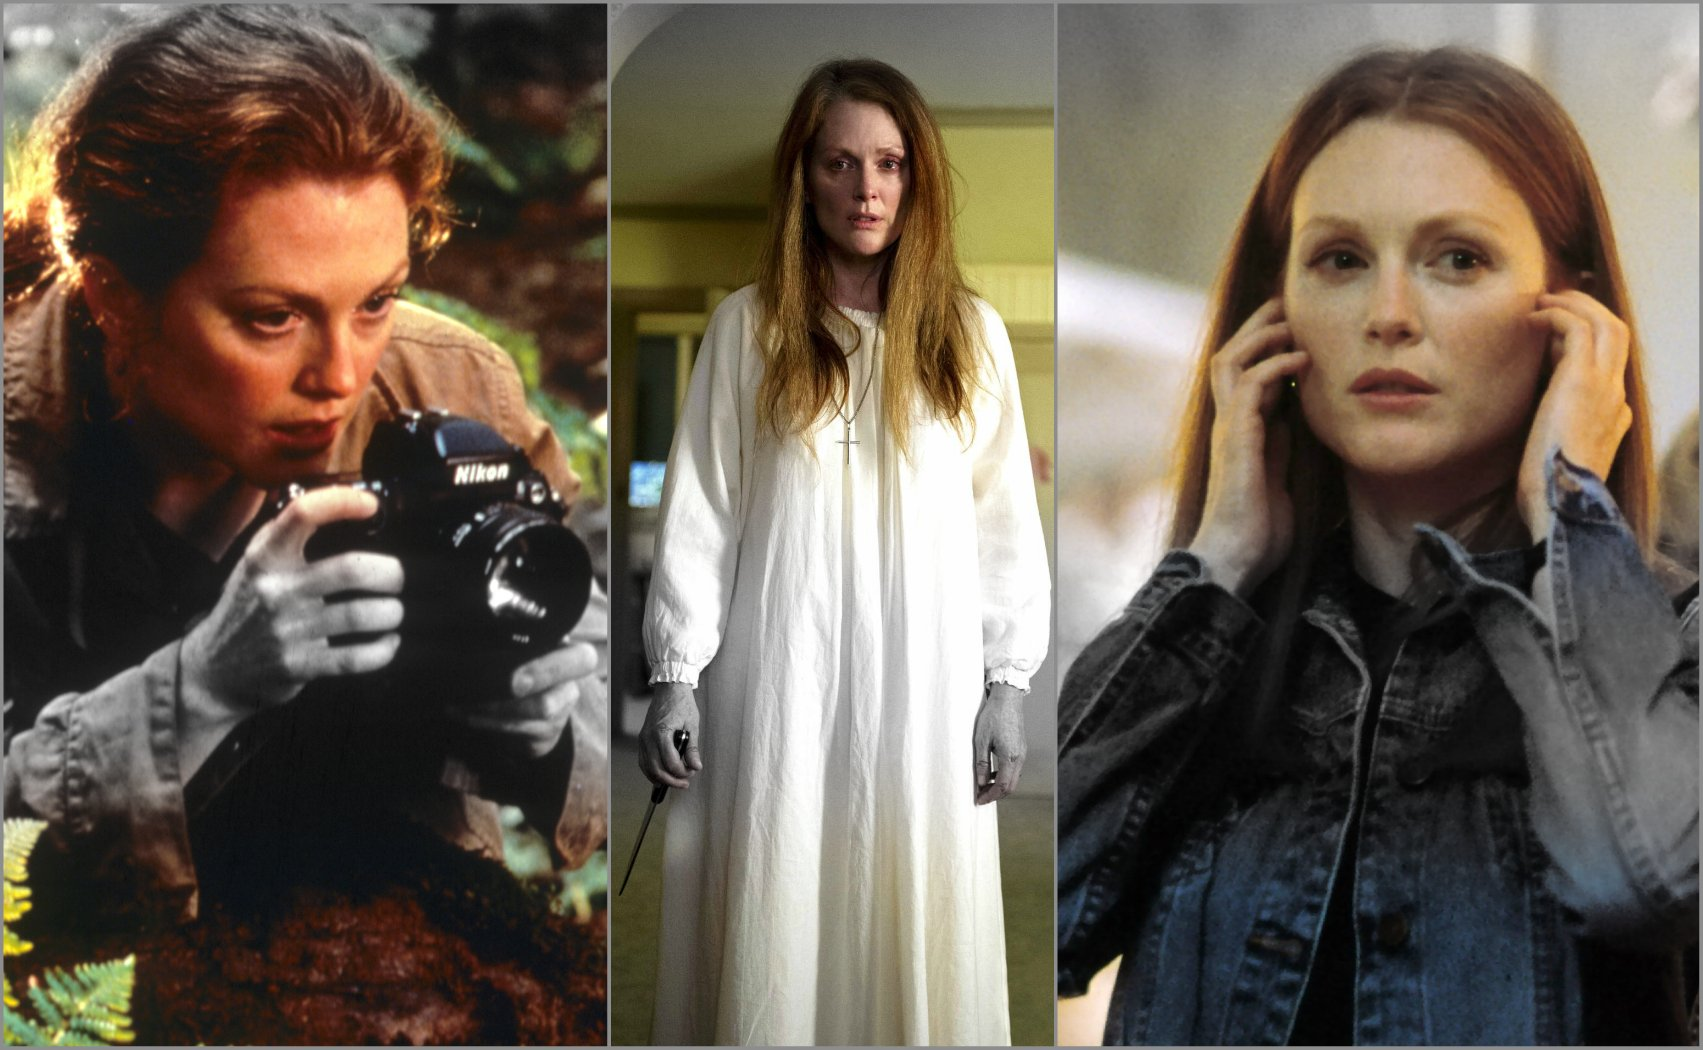 HL wishes a VERY Happy Birthday to the wonderful Julianne Moore. (Martyn)